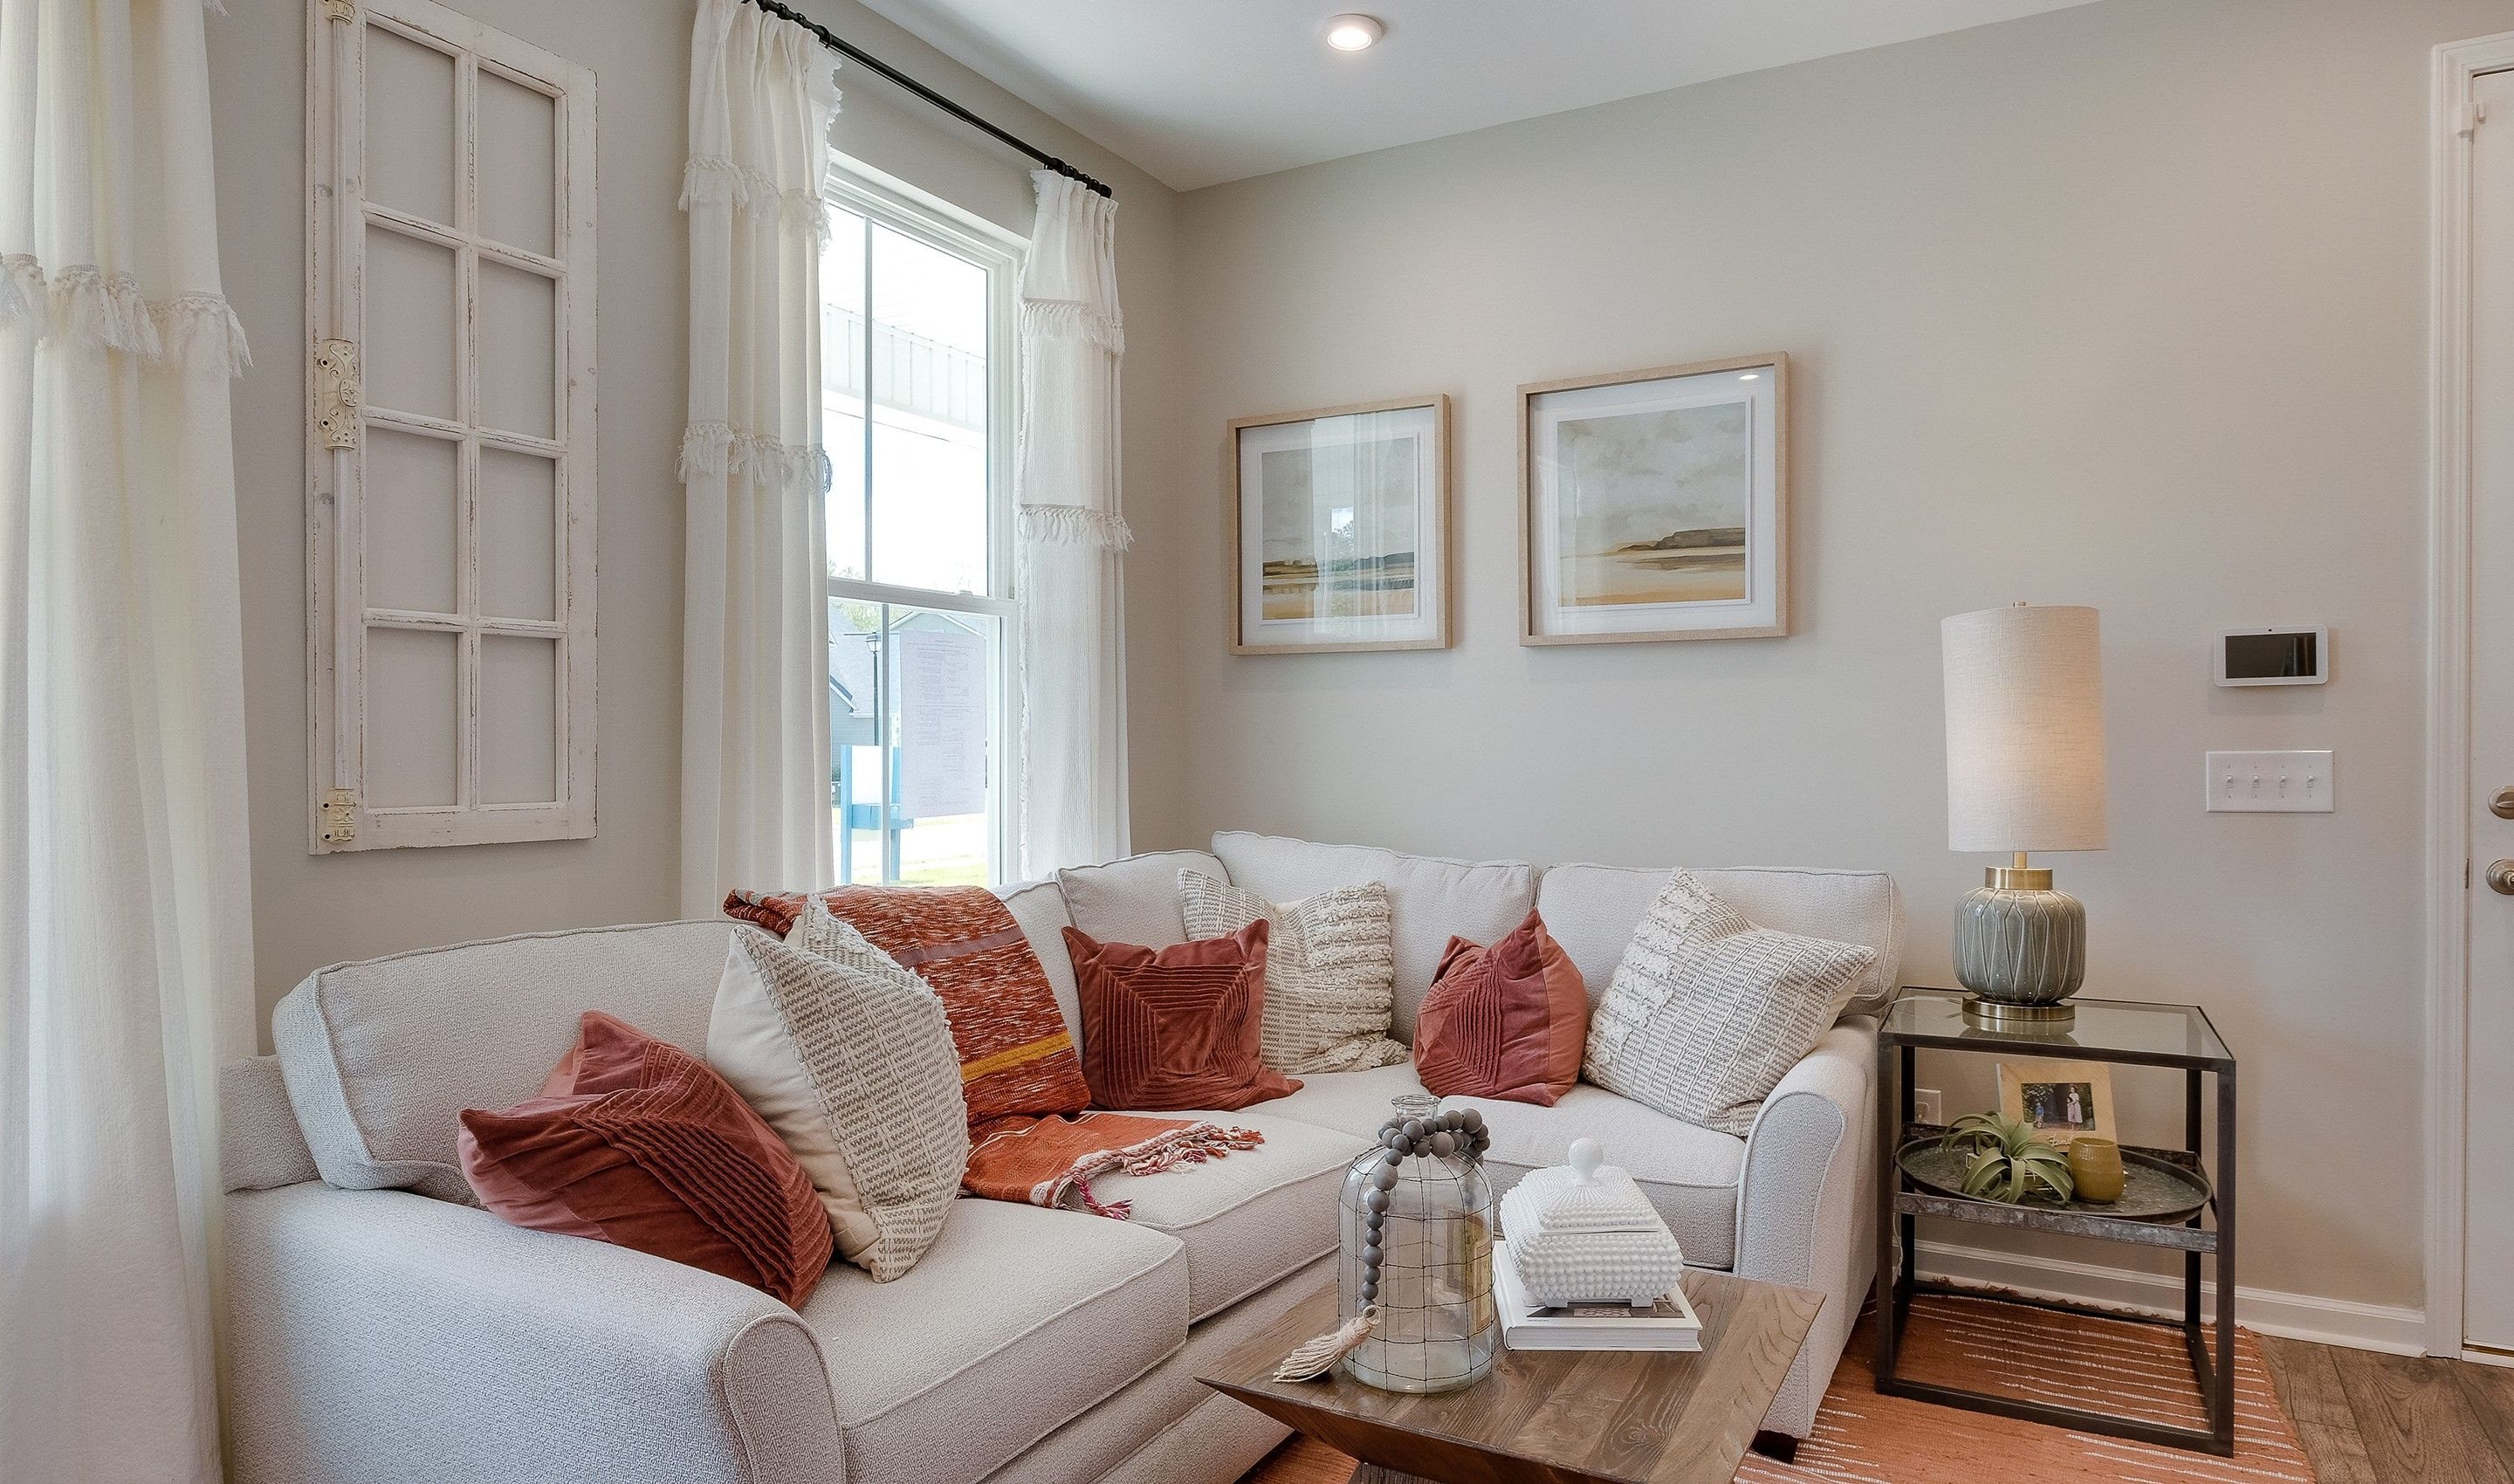 Living Area featured in the Palmera II By K. Hovnanian® Homes in Hilton Head, SC